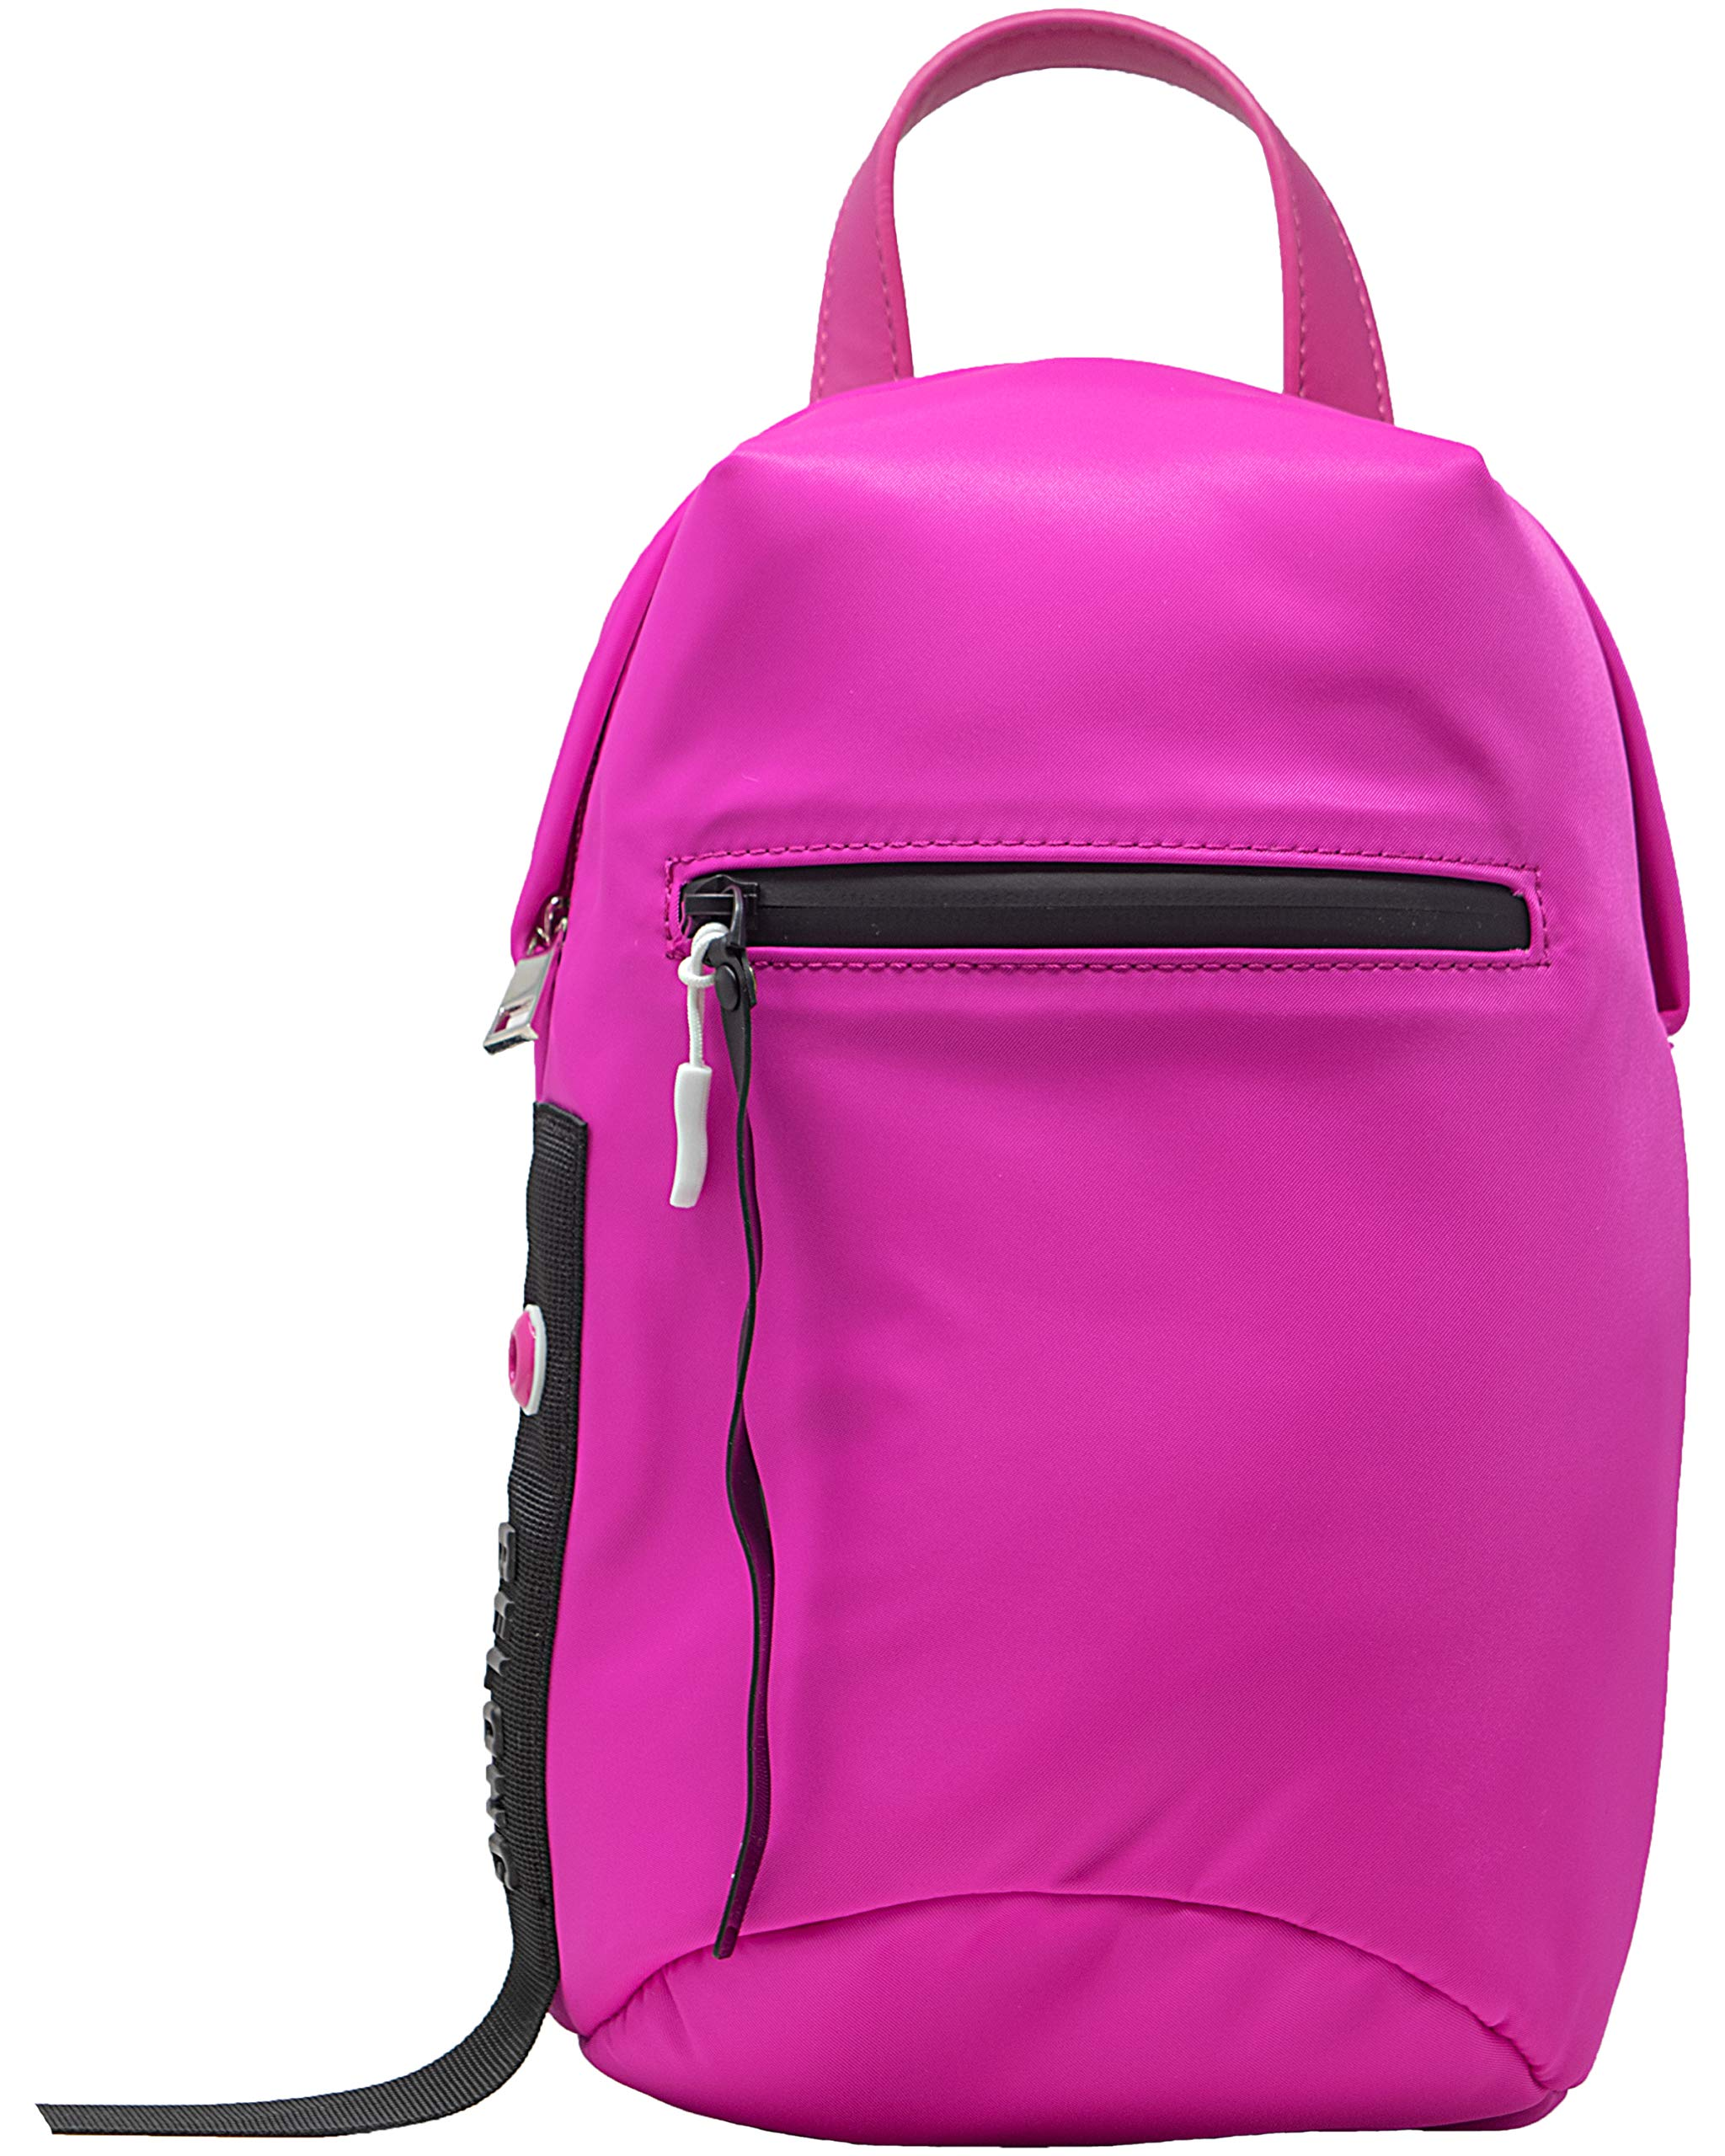 Funky Junque Backpack Purse Women's Carry On Shoulder Bag Crossbody Sling Travel Nylon